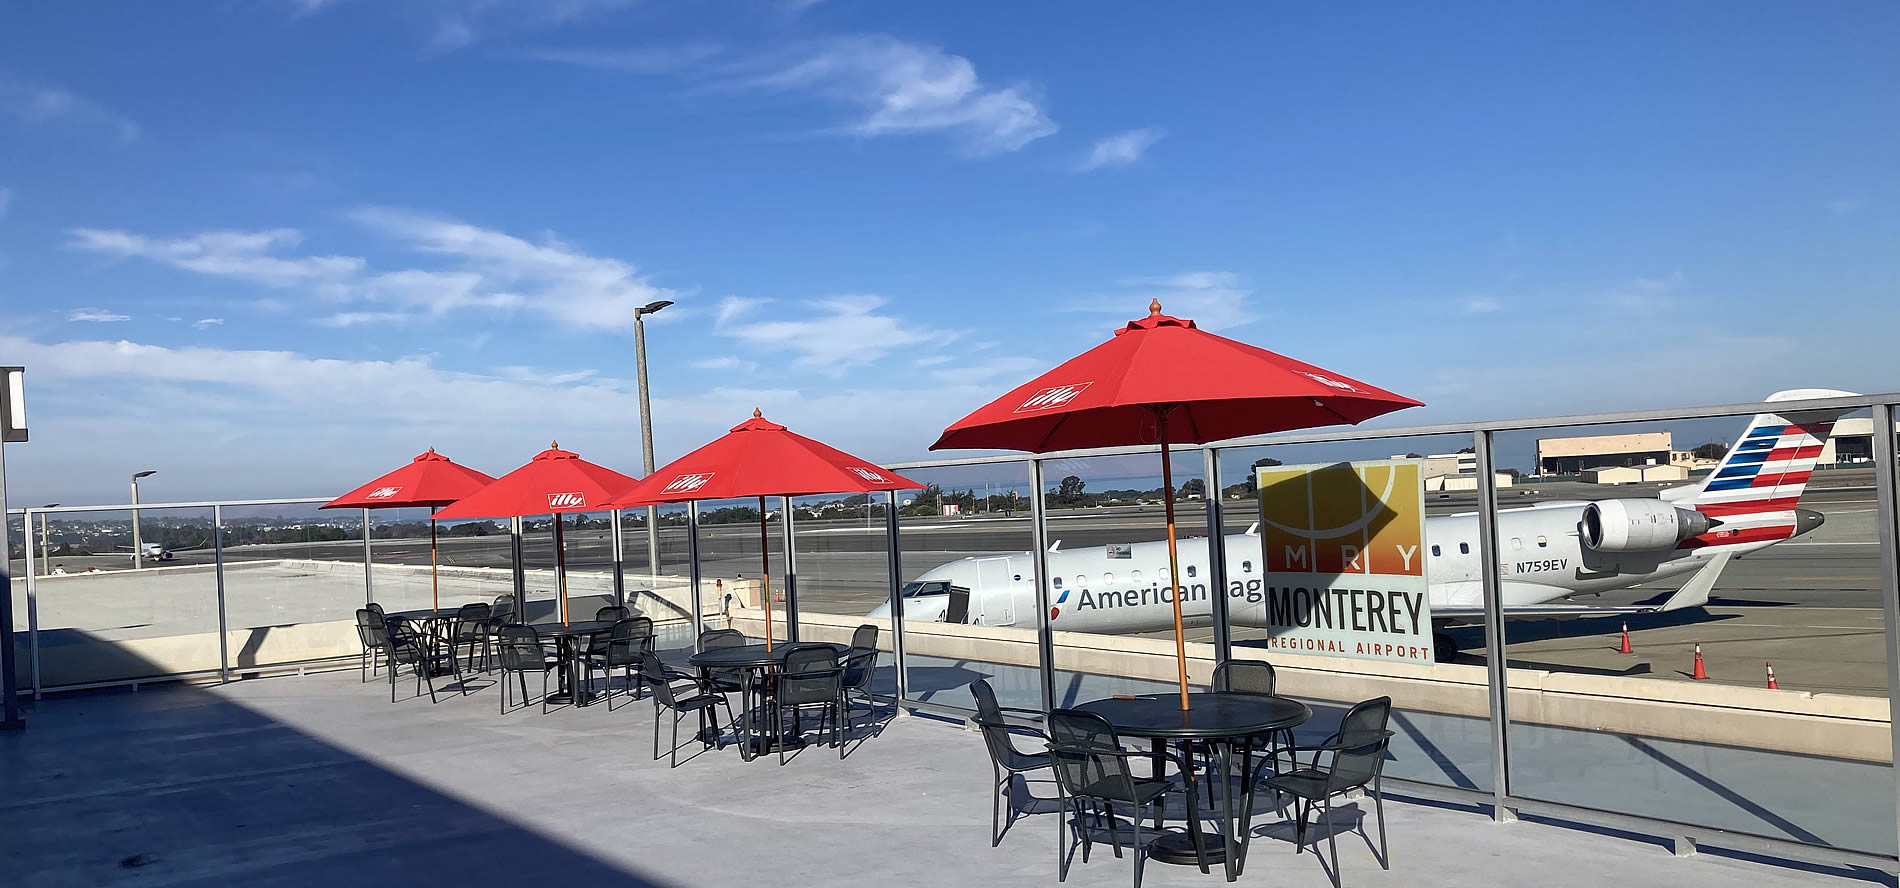 outdoor seating @ woody's monterey airport restaurant and bar, chef tim wood